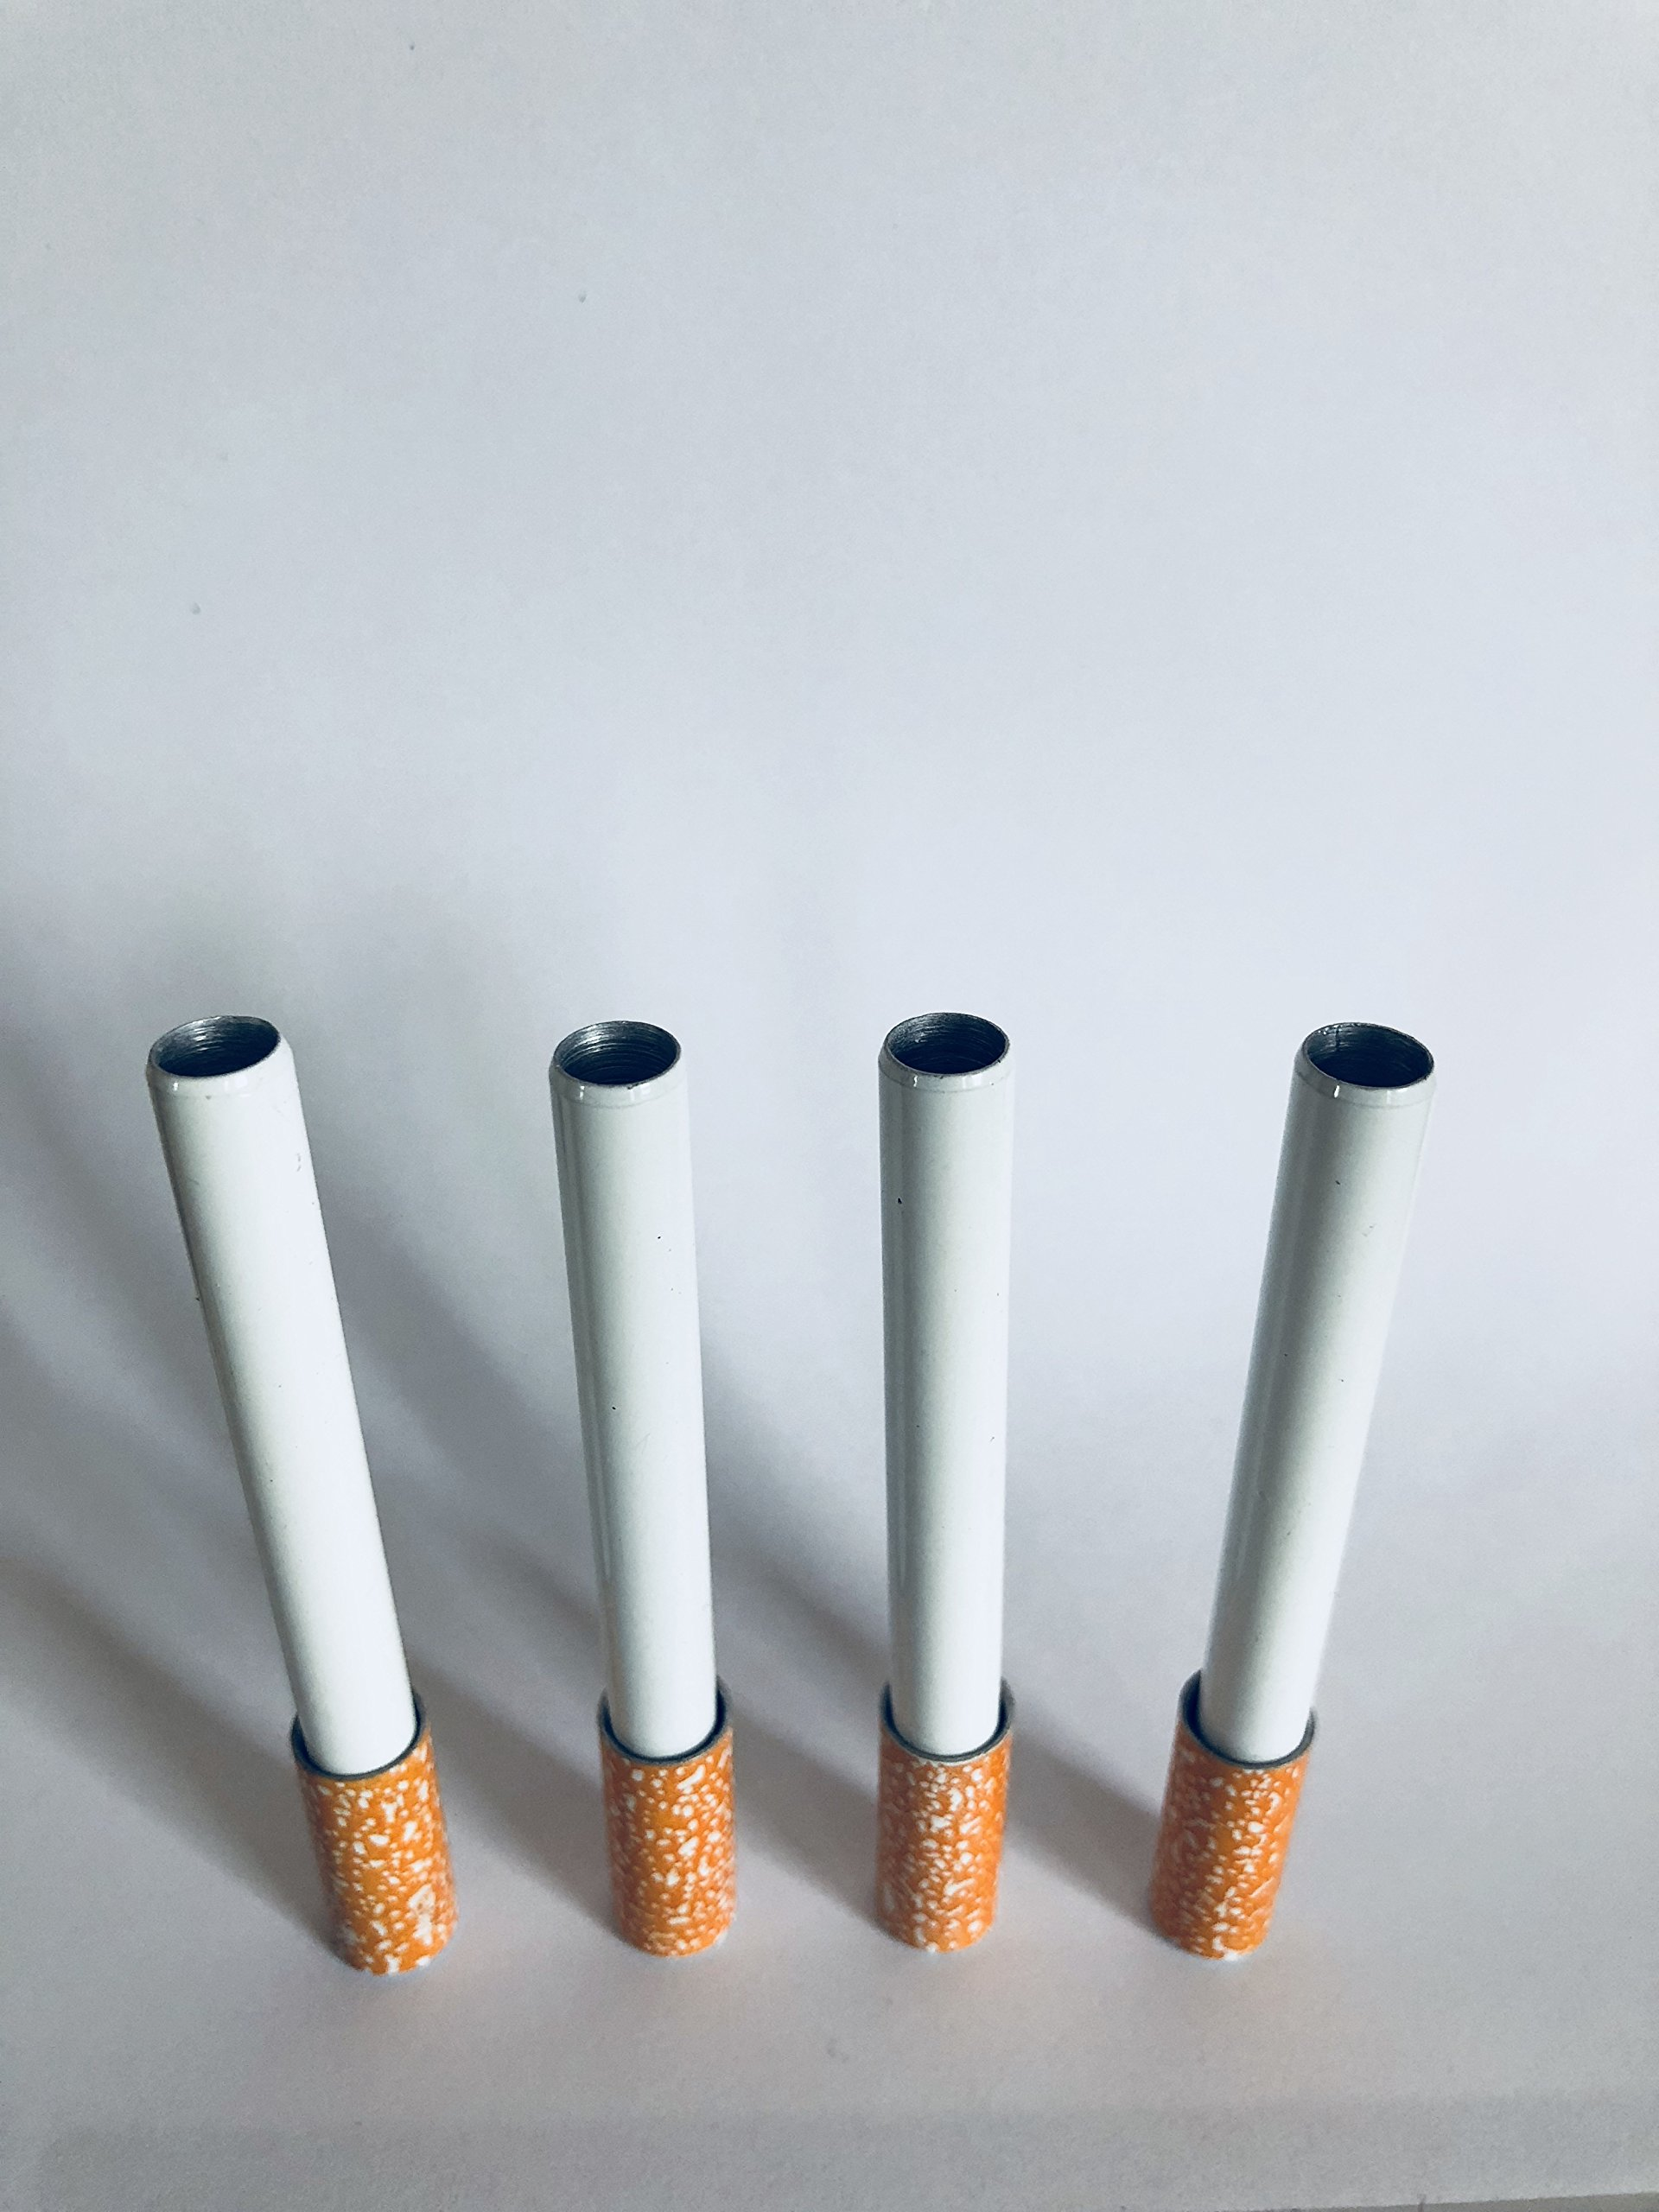 by Quality US - New Metal Cigarette Holder with Spring, (Pack of 4 pcs), Metal Bat, Free Shipping !